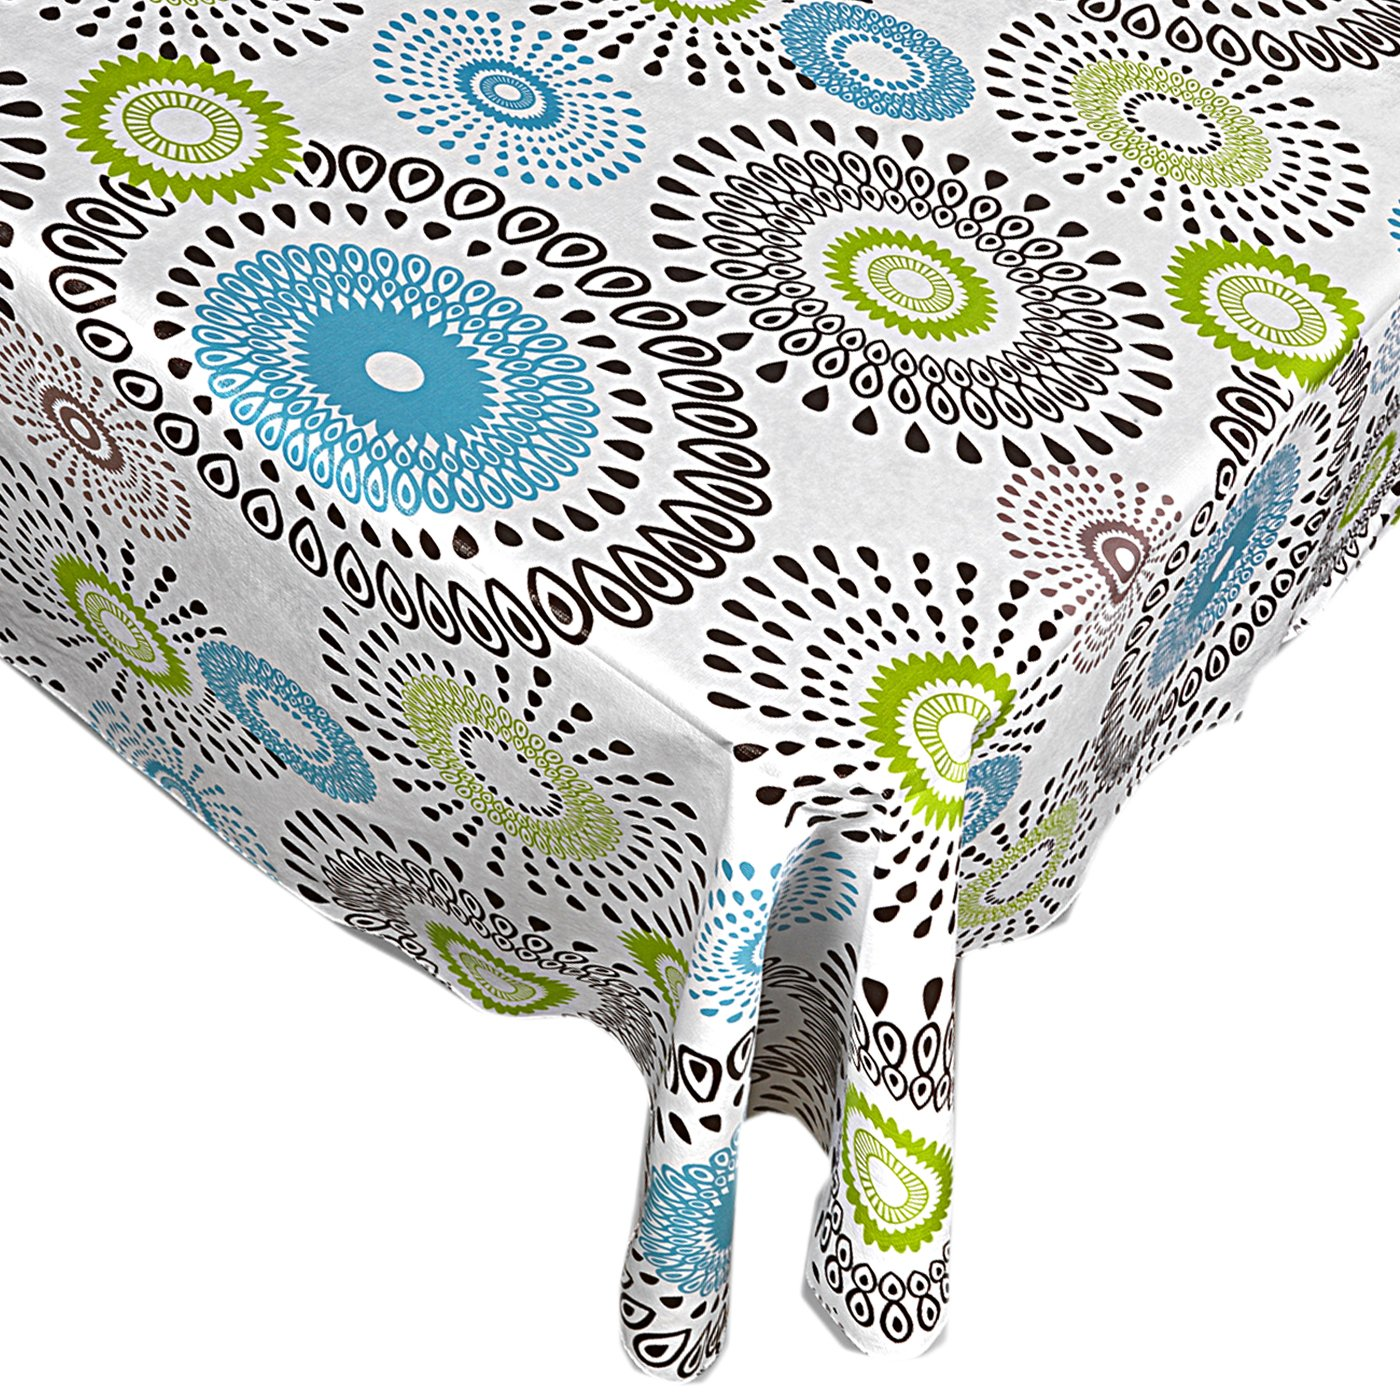 Whimsy Circle Contemporary Print Indoor/Outdoor Vinyl Flannel Backed Tablecloth - 70 Round by Home Bargains Plus (Image #2)